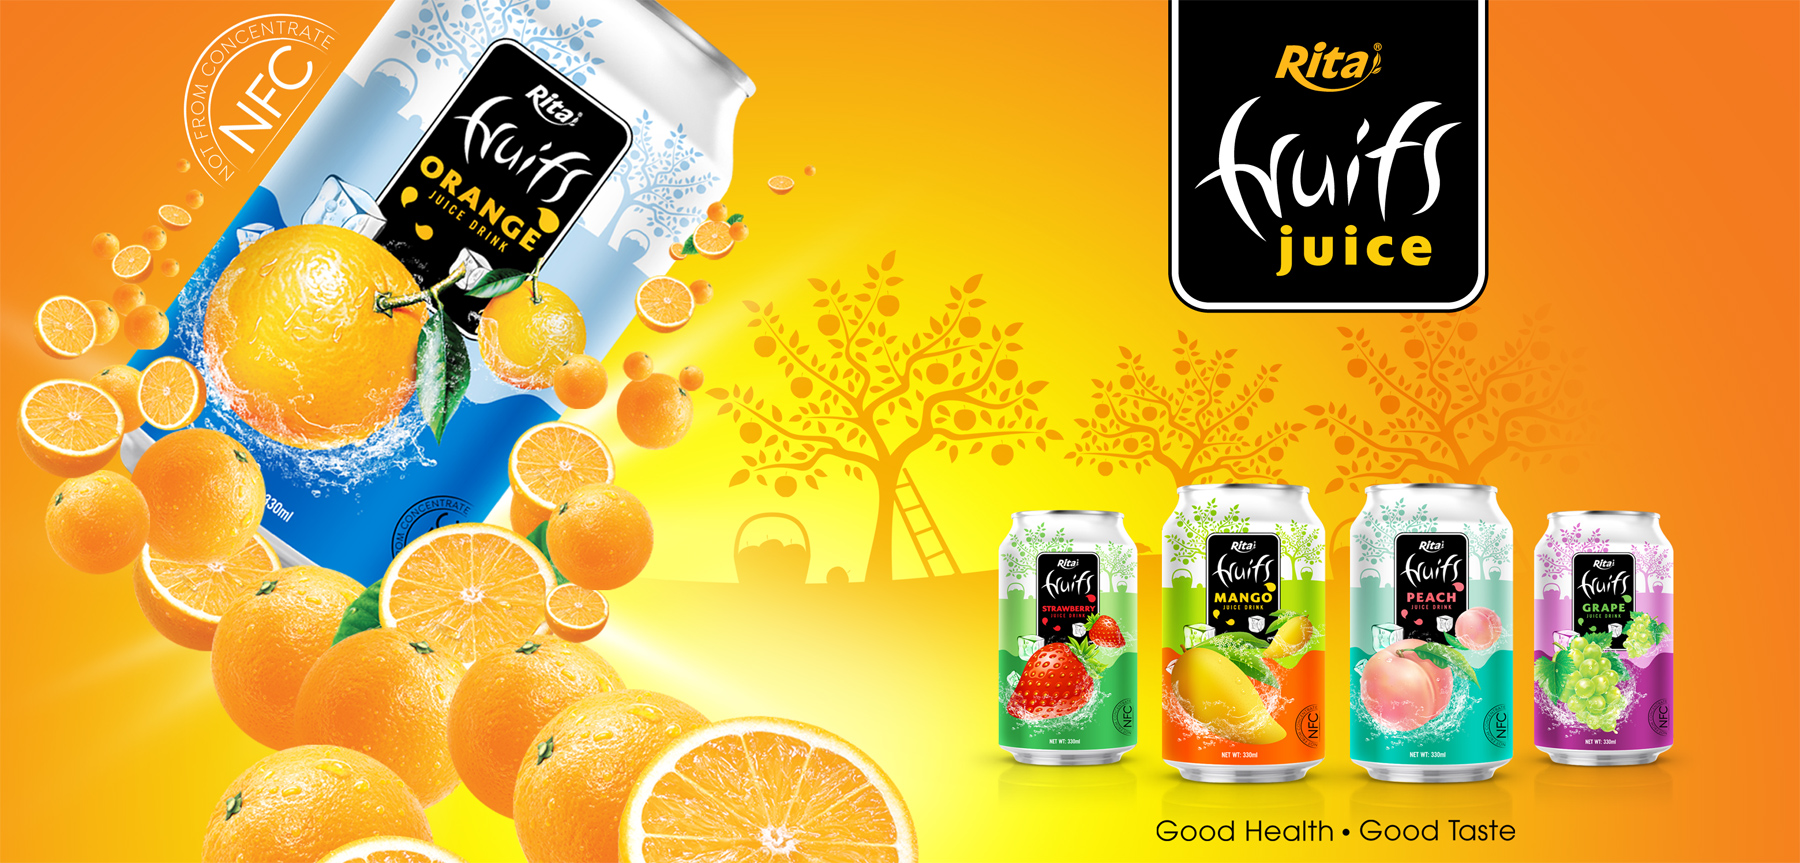 Peach juice 330ml fruit drinks brands